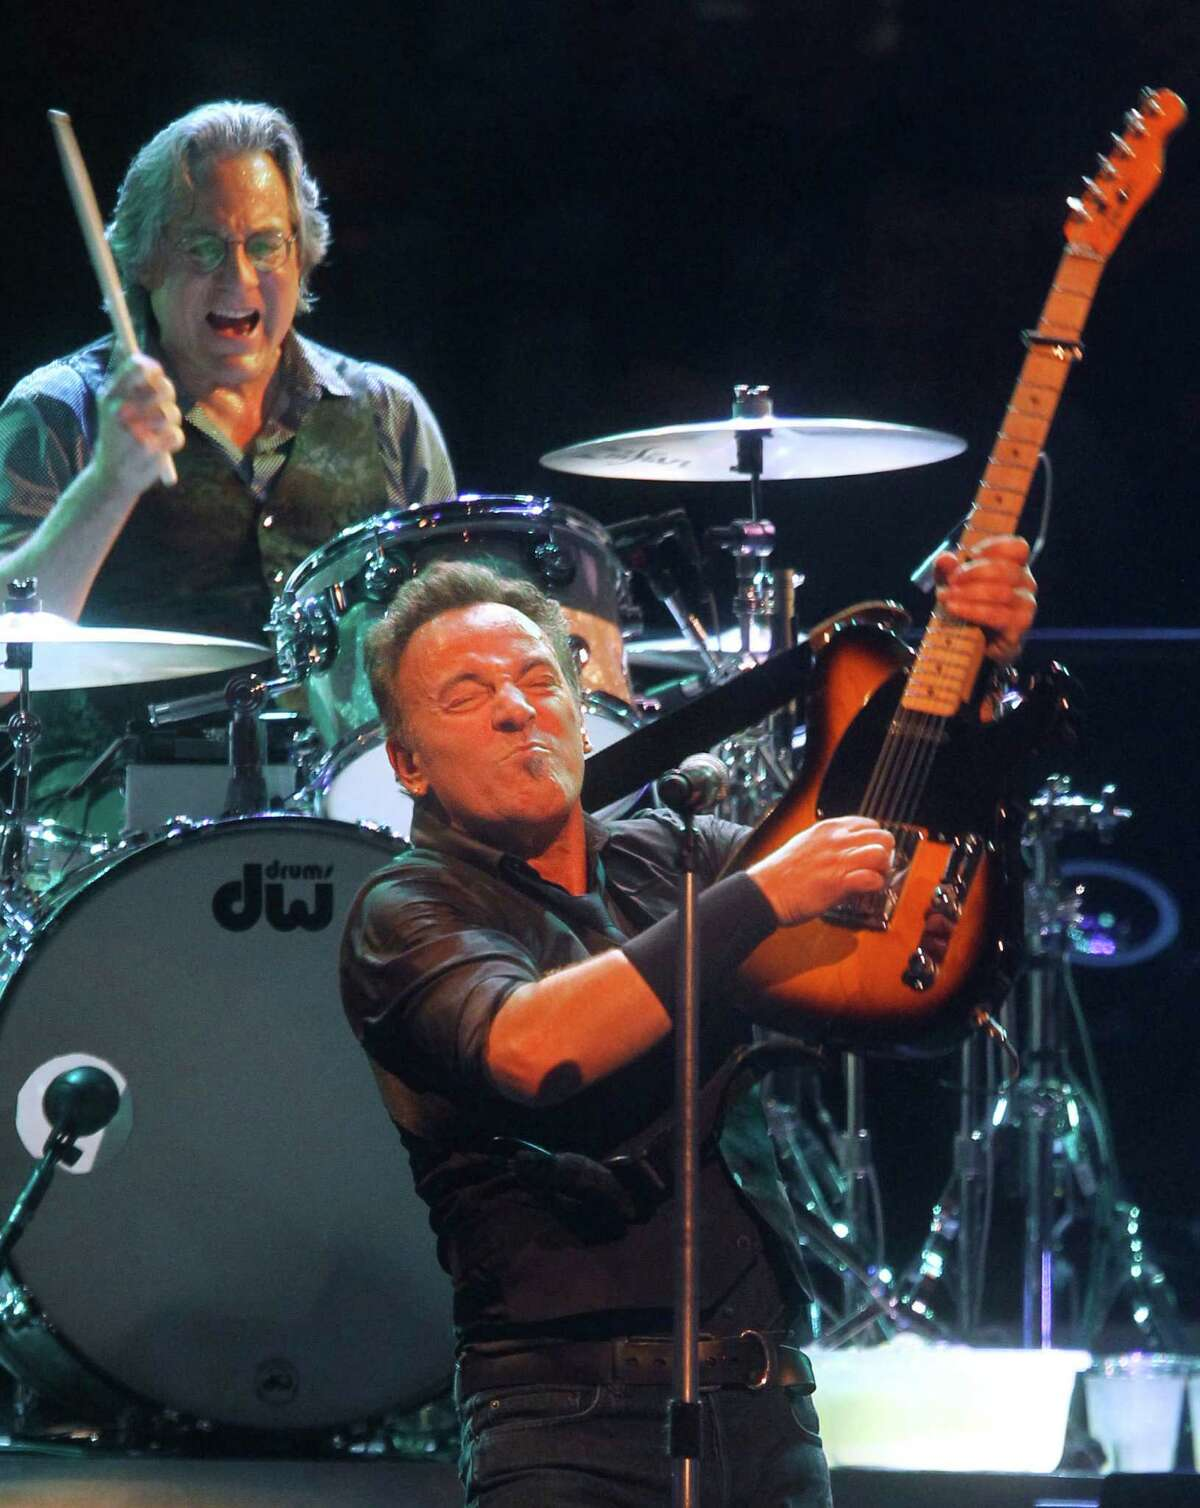 Bruce Springsteen performs with E Street Band member Max Weinberg, drums, during a concert at Madison Square Garden, Friday, April 6, 2012 in New York.